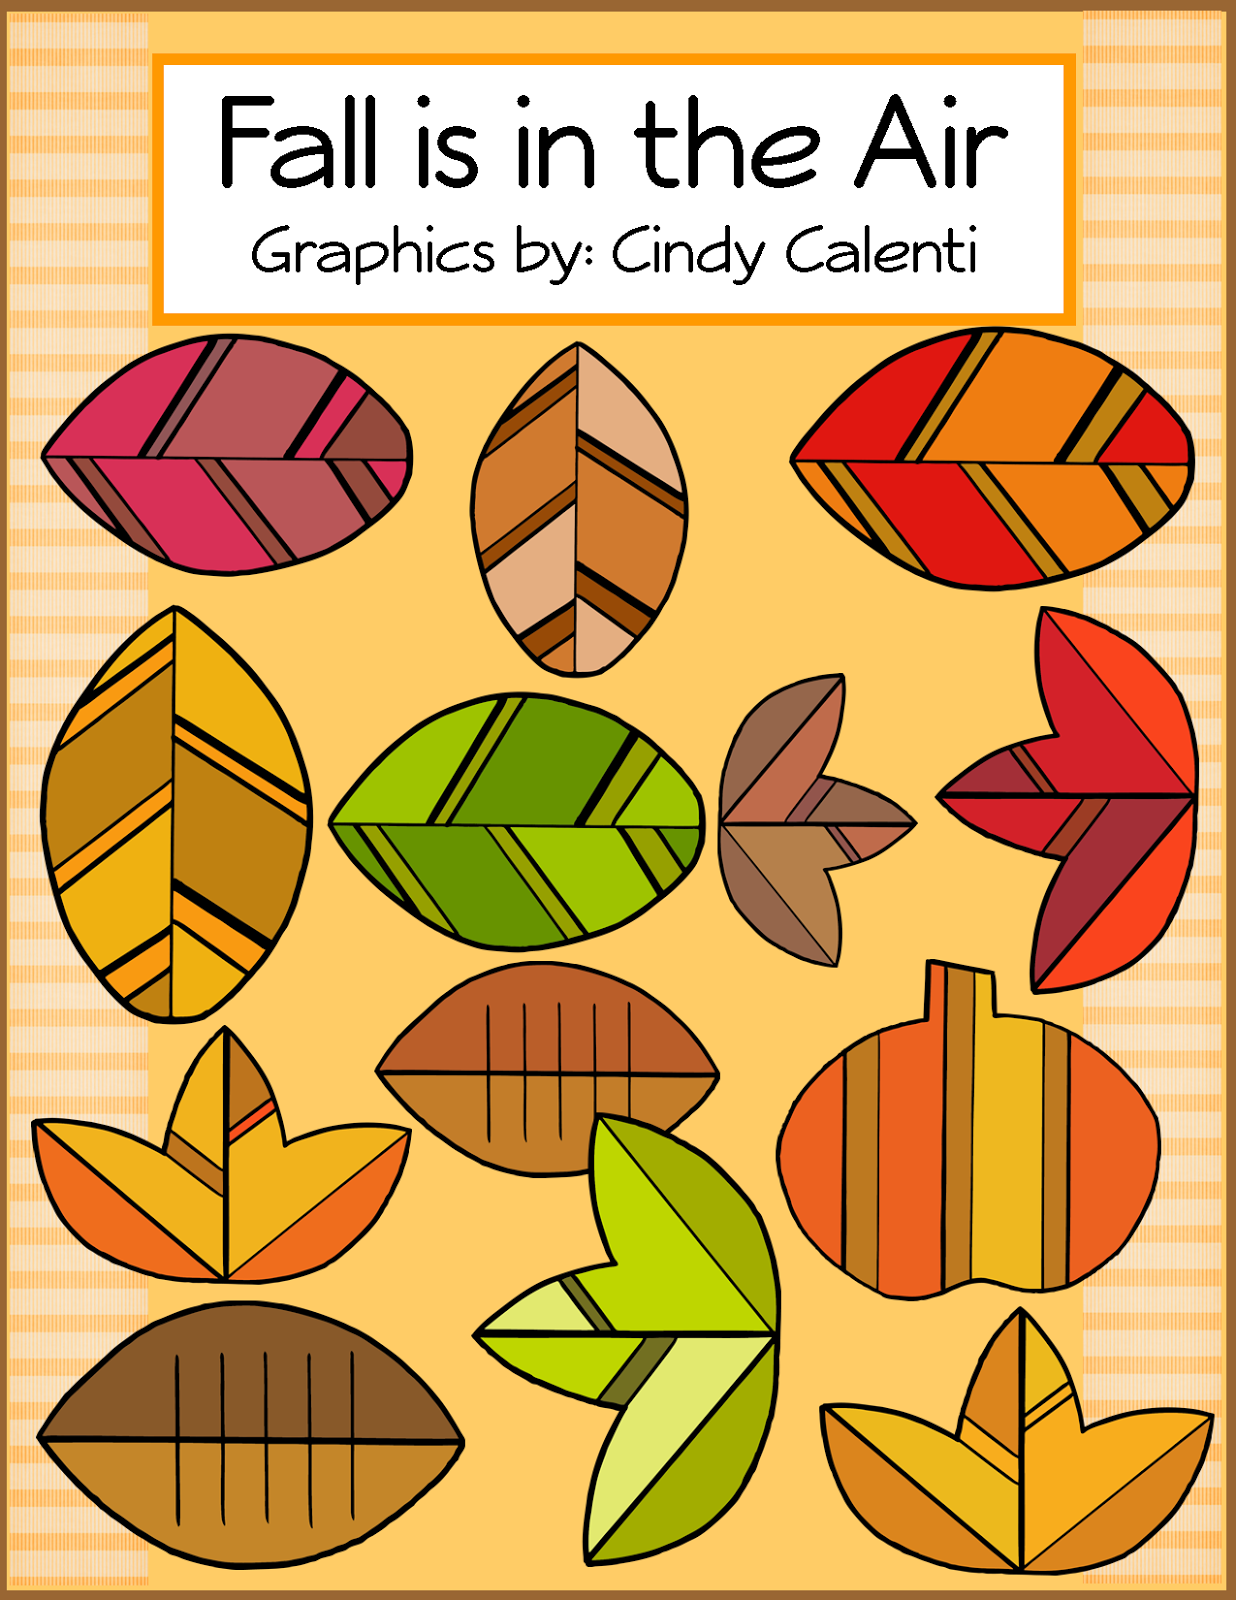 http://www.teacherspayteachers.com/Product/Fall-is-in-the-Air-Free-Clip-Art-1418638